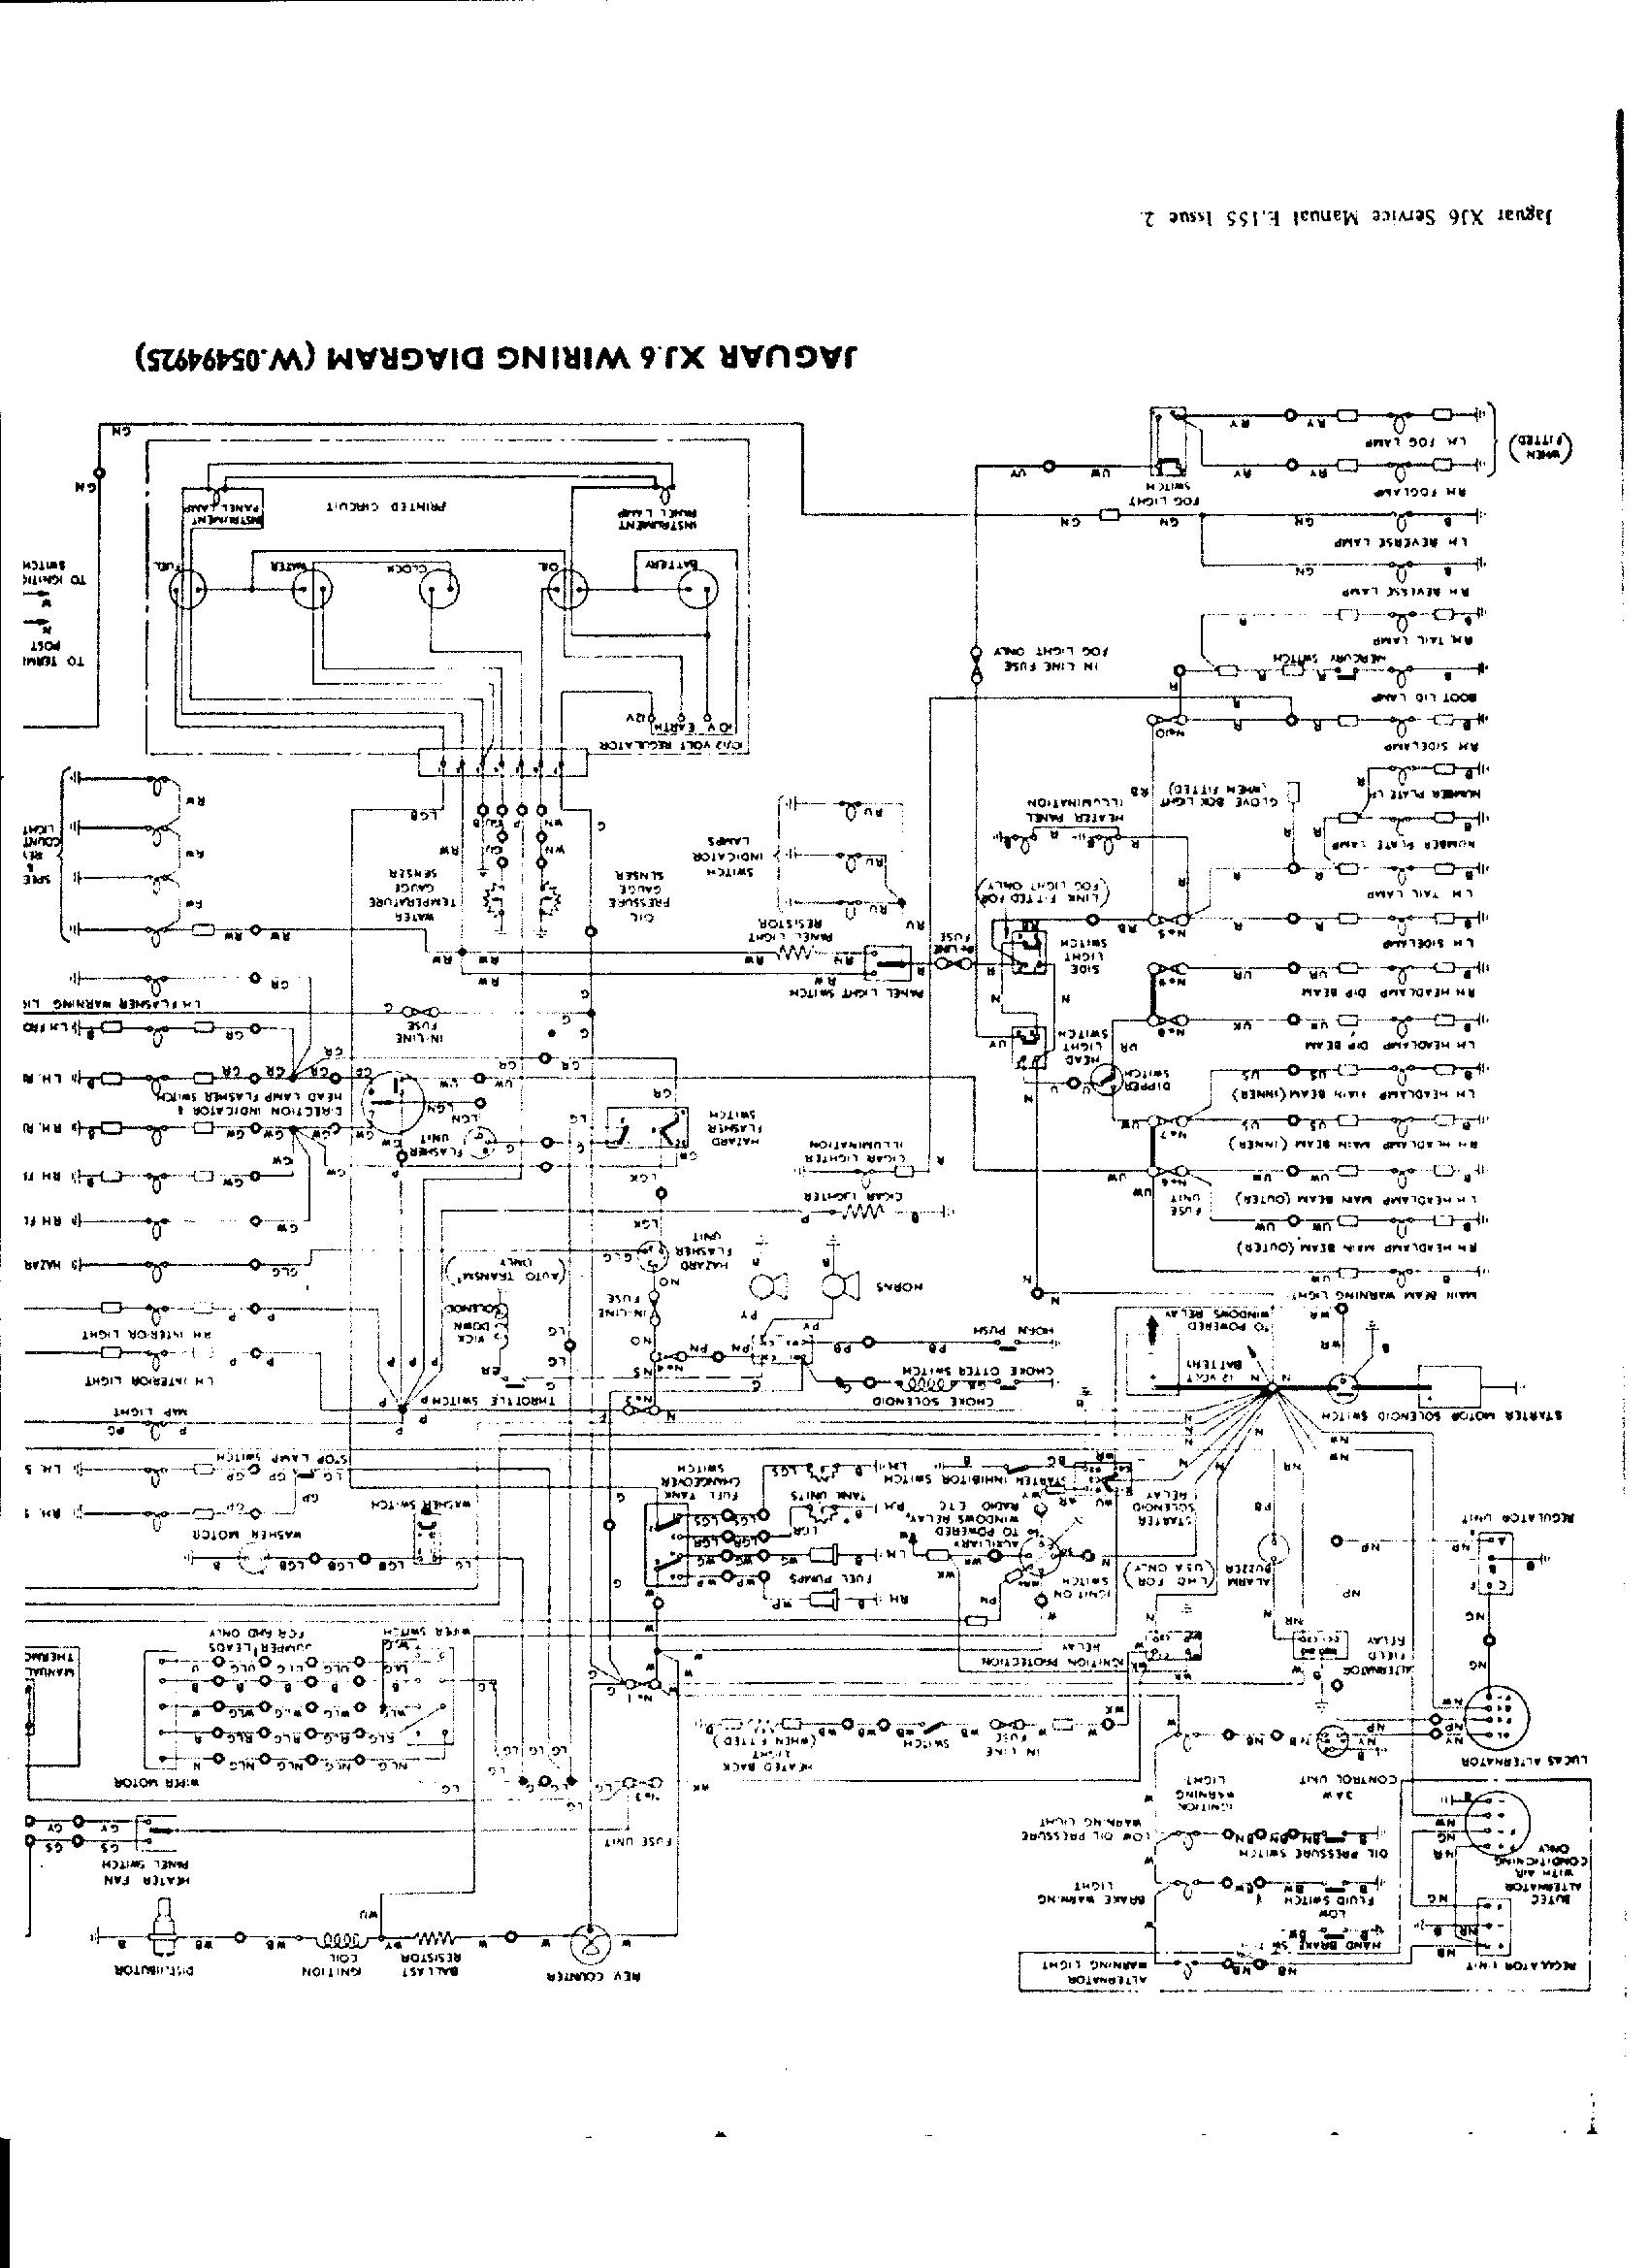 56 Chevy Wiper Motor Wiring Diagram. Chevy. Auto Fuse Box